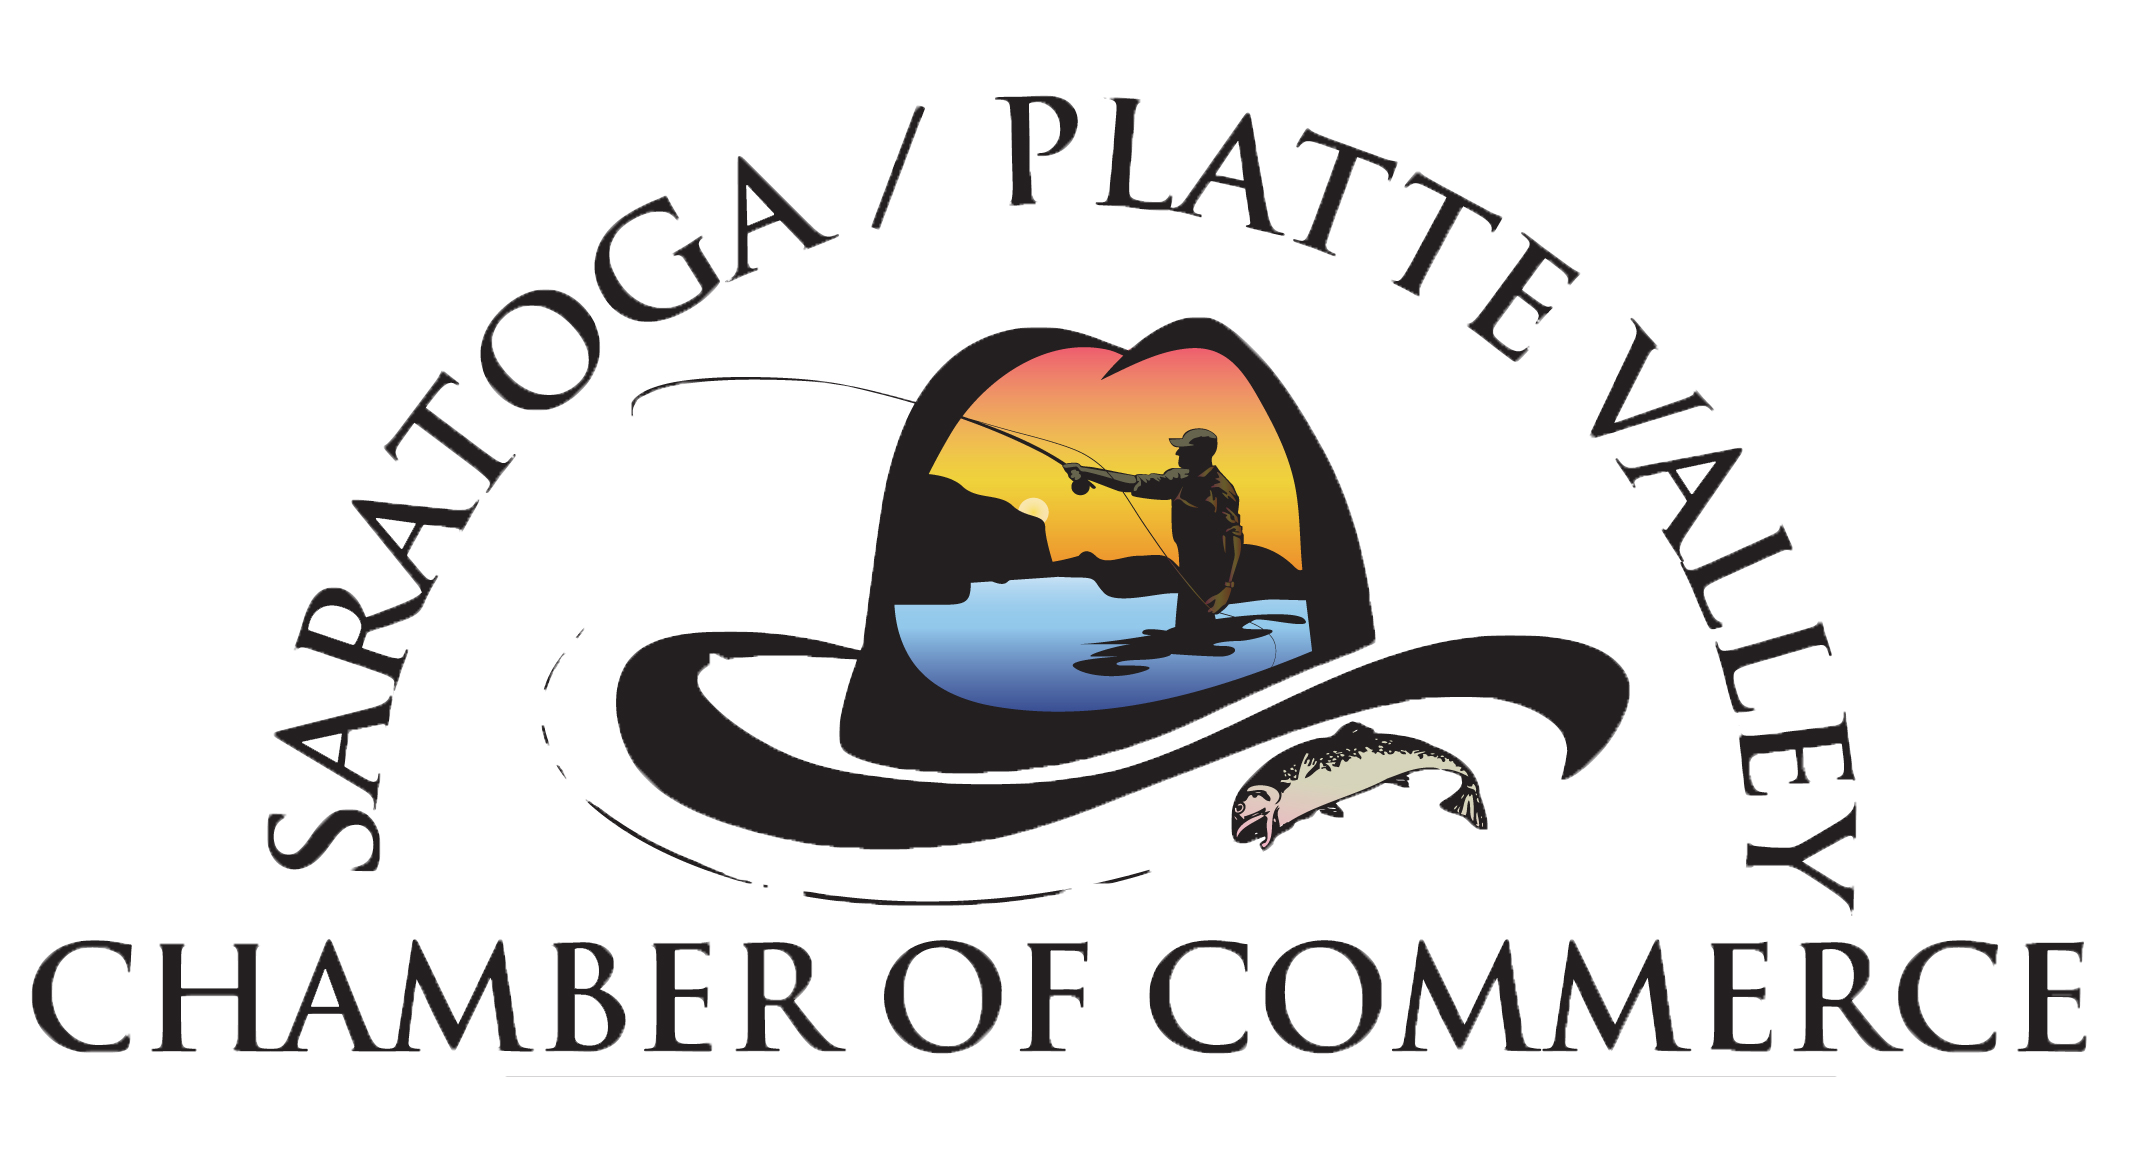 Saratoga Platte Valley Chamber of Commerce